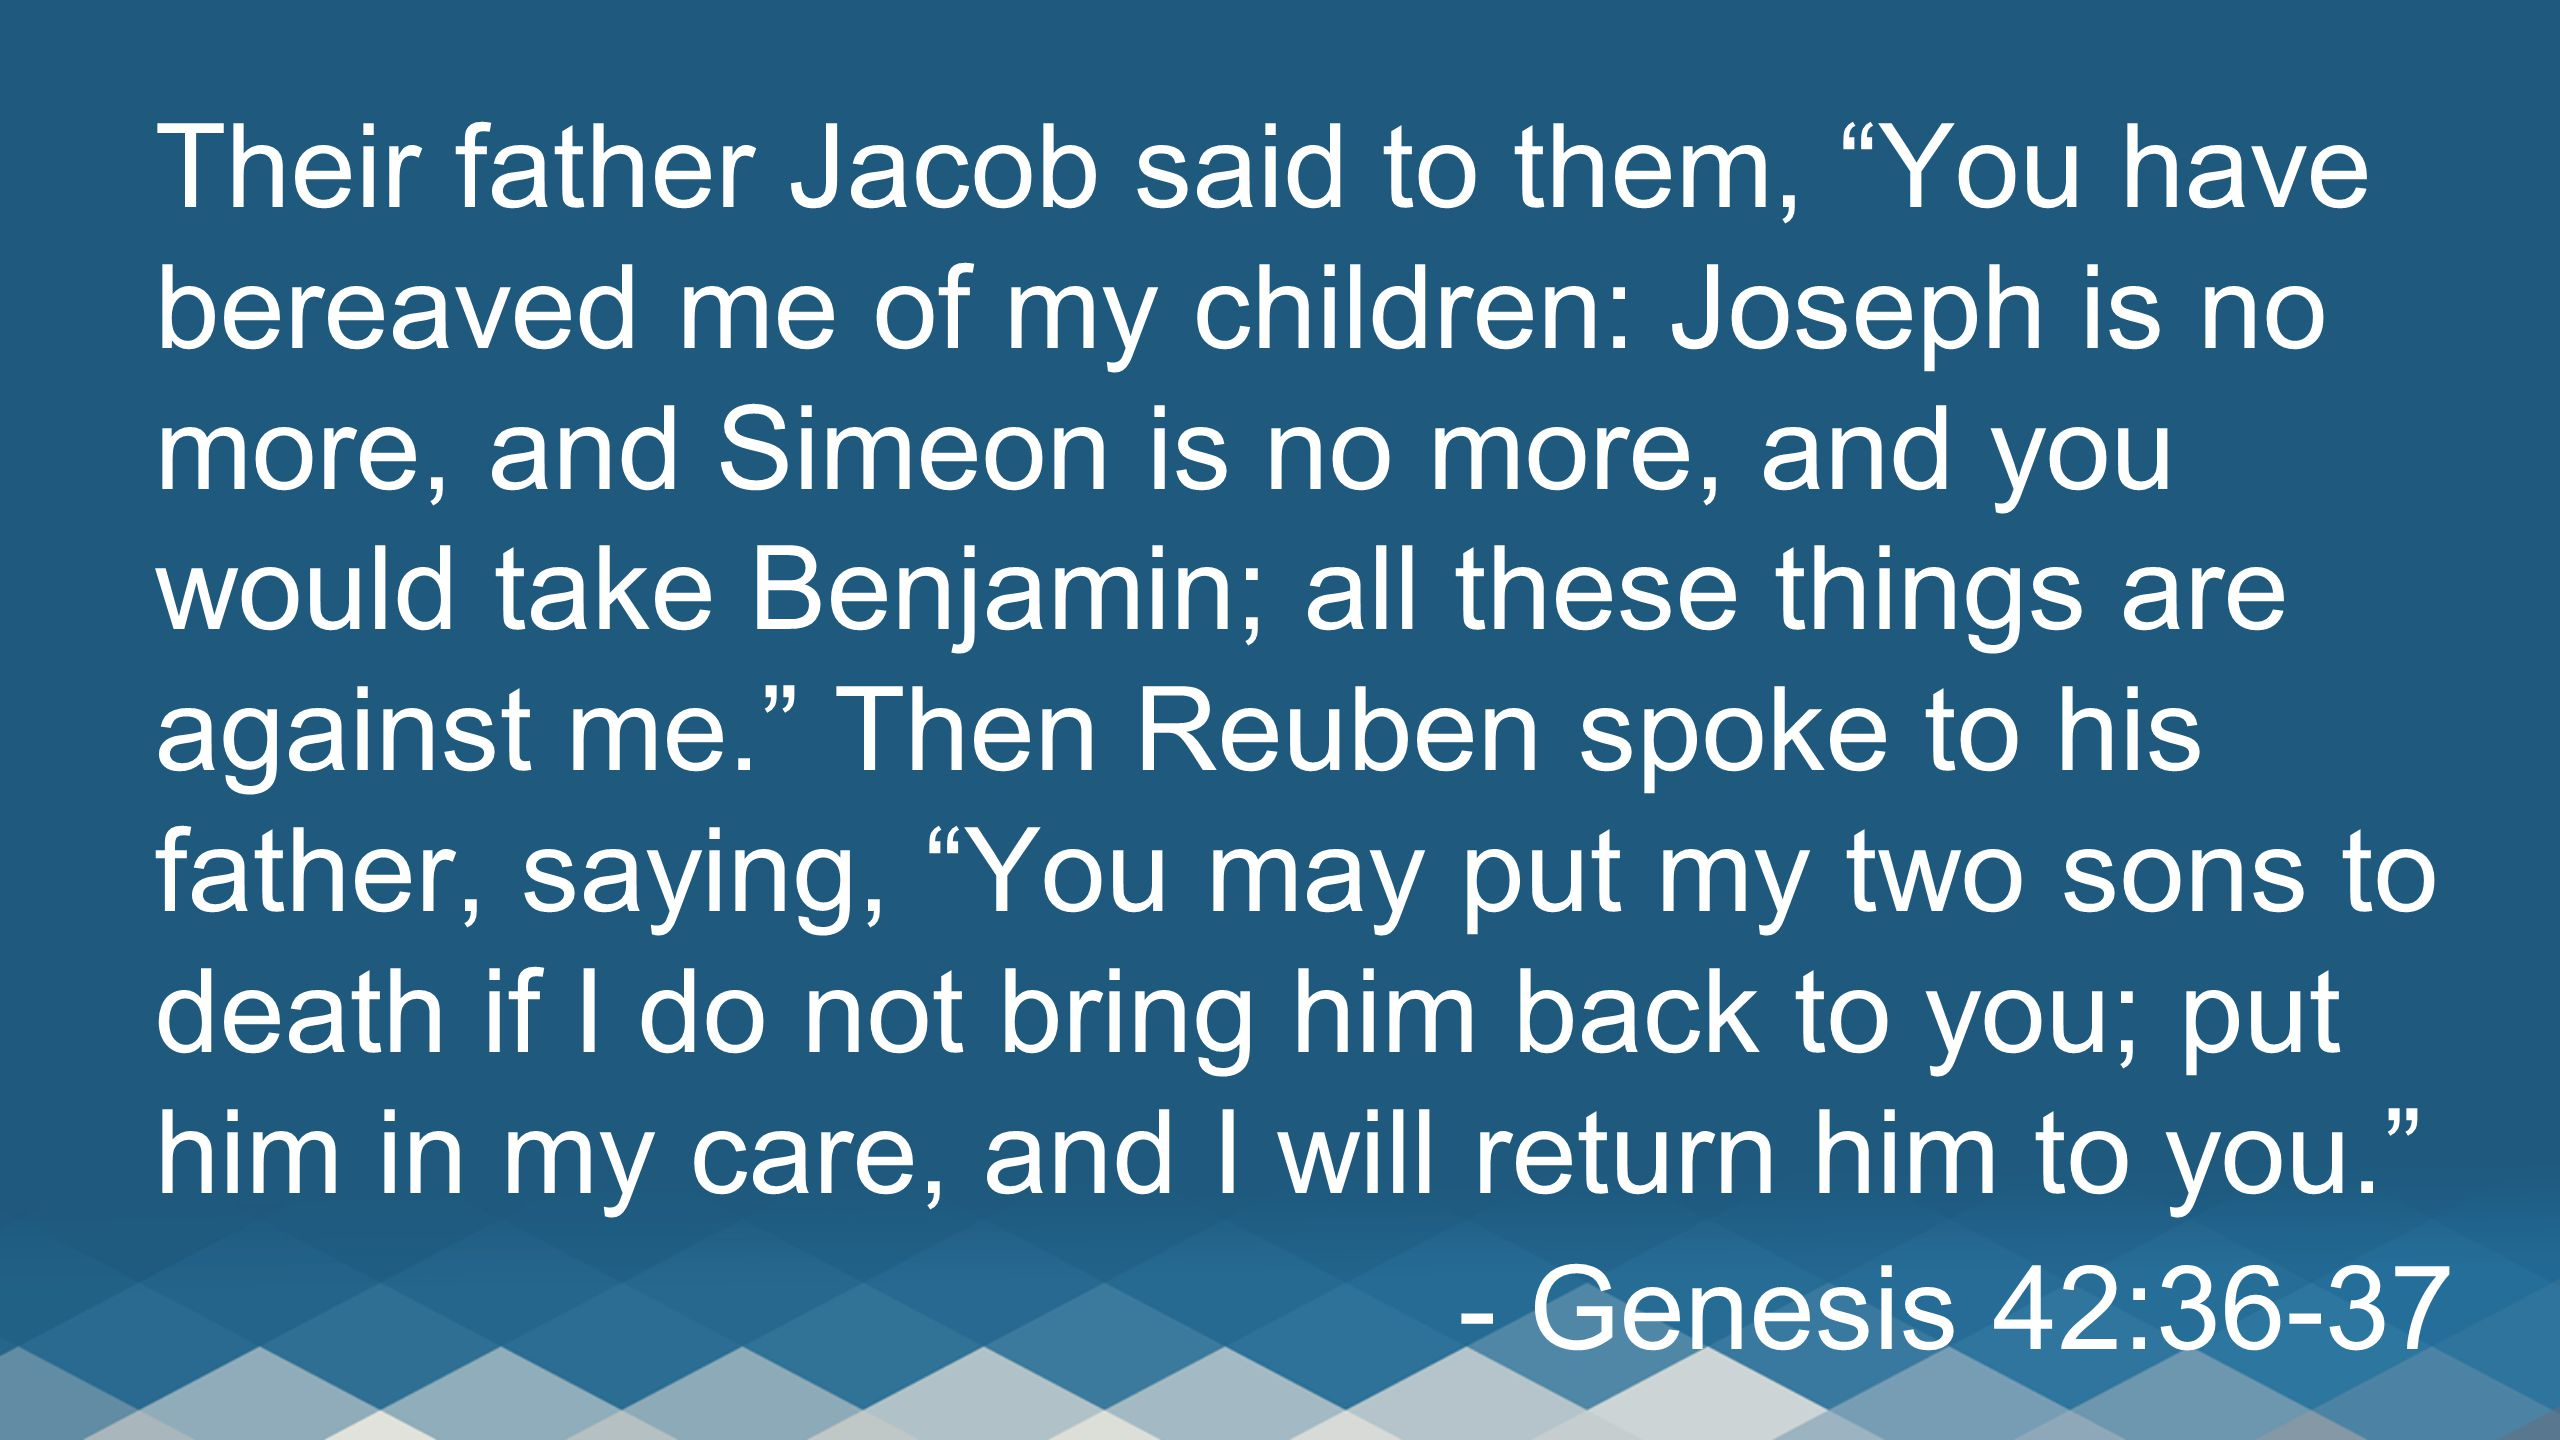 """Their father Jacob said to them, """"You have bereaved me of my children: Joseph is no more, and Simeon is no more, and you would take Benjamin; all thes"""